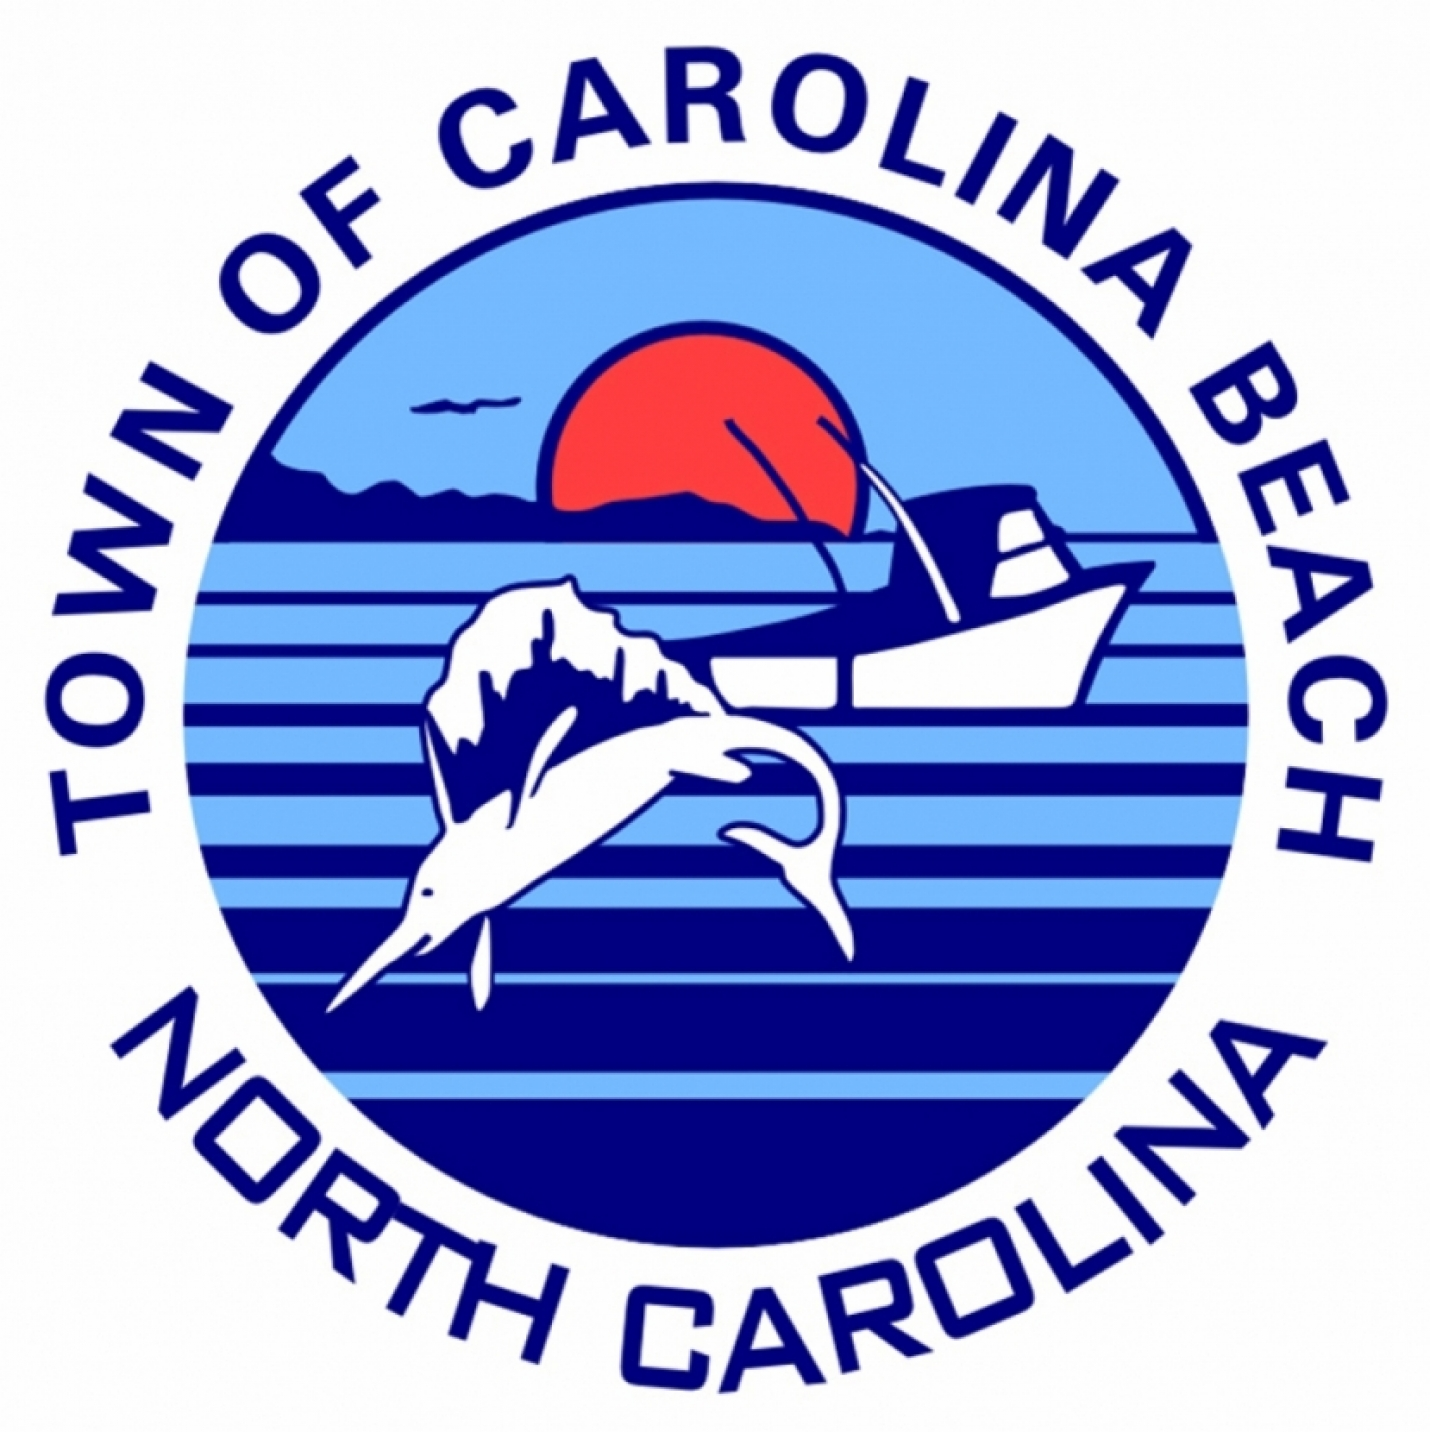 Weekly Recycling In Carolina Beach Starts March 12th